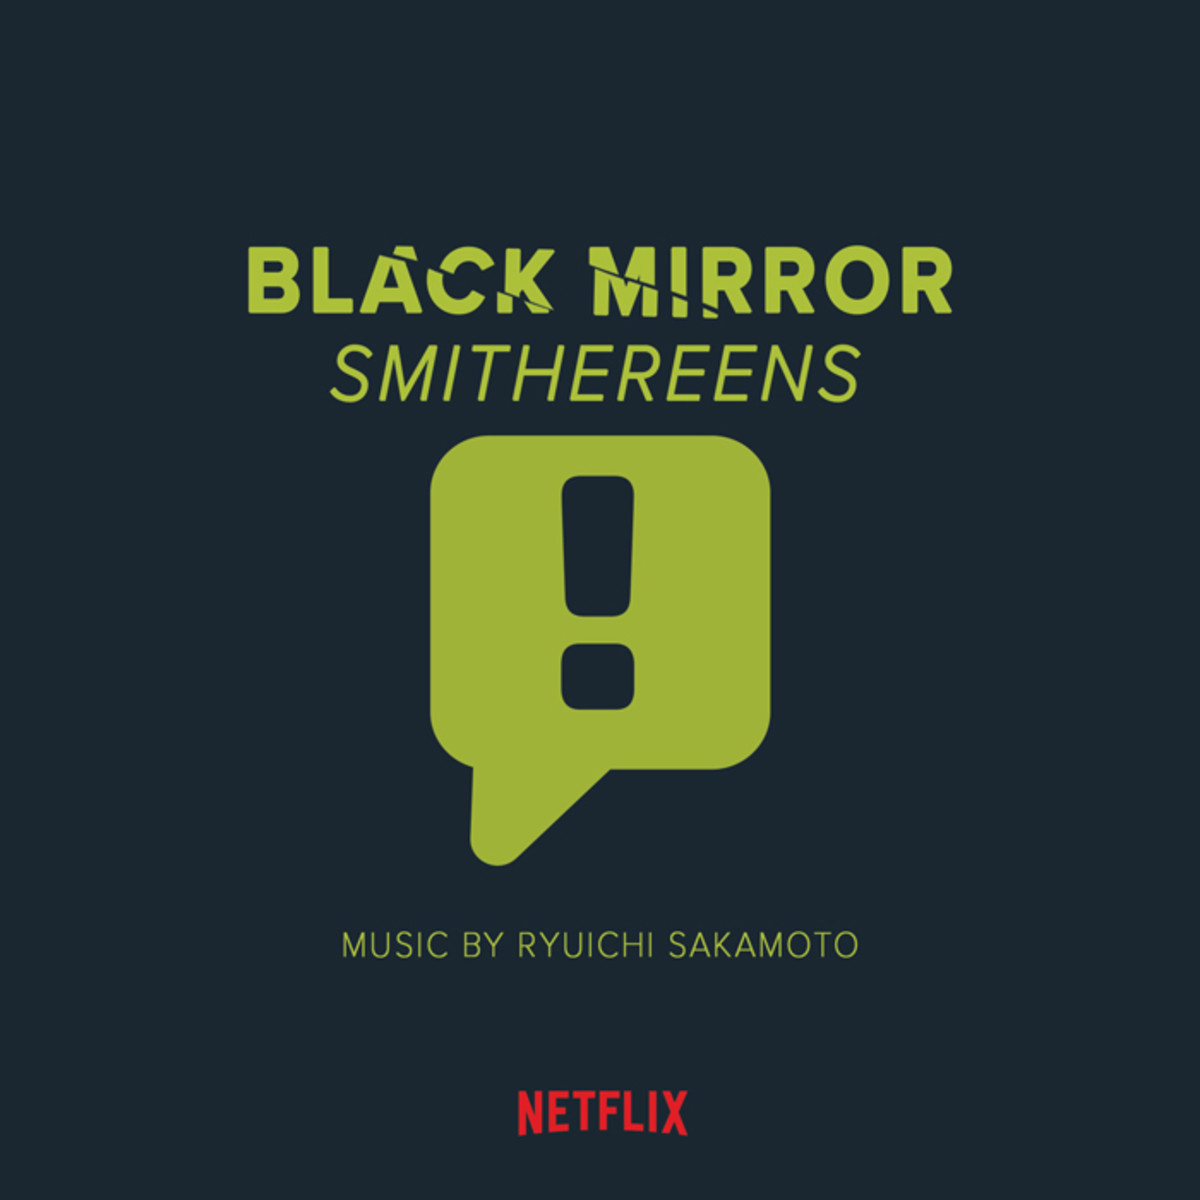 Black Mirror Smithereens